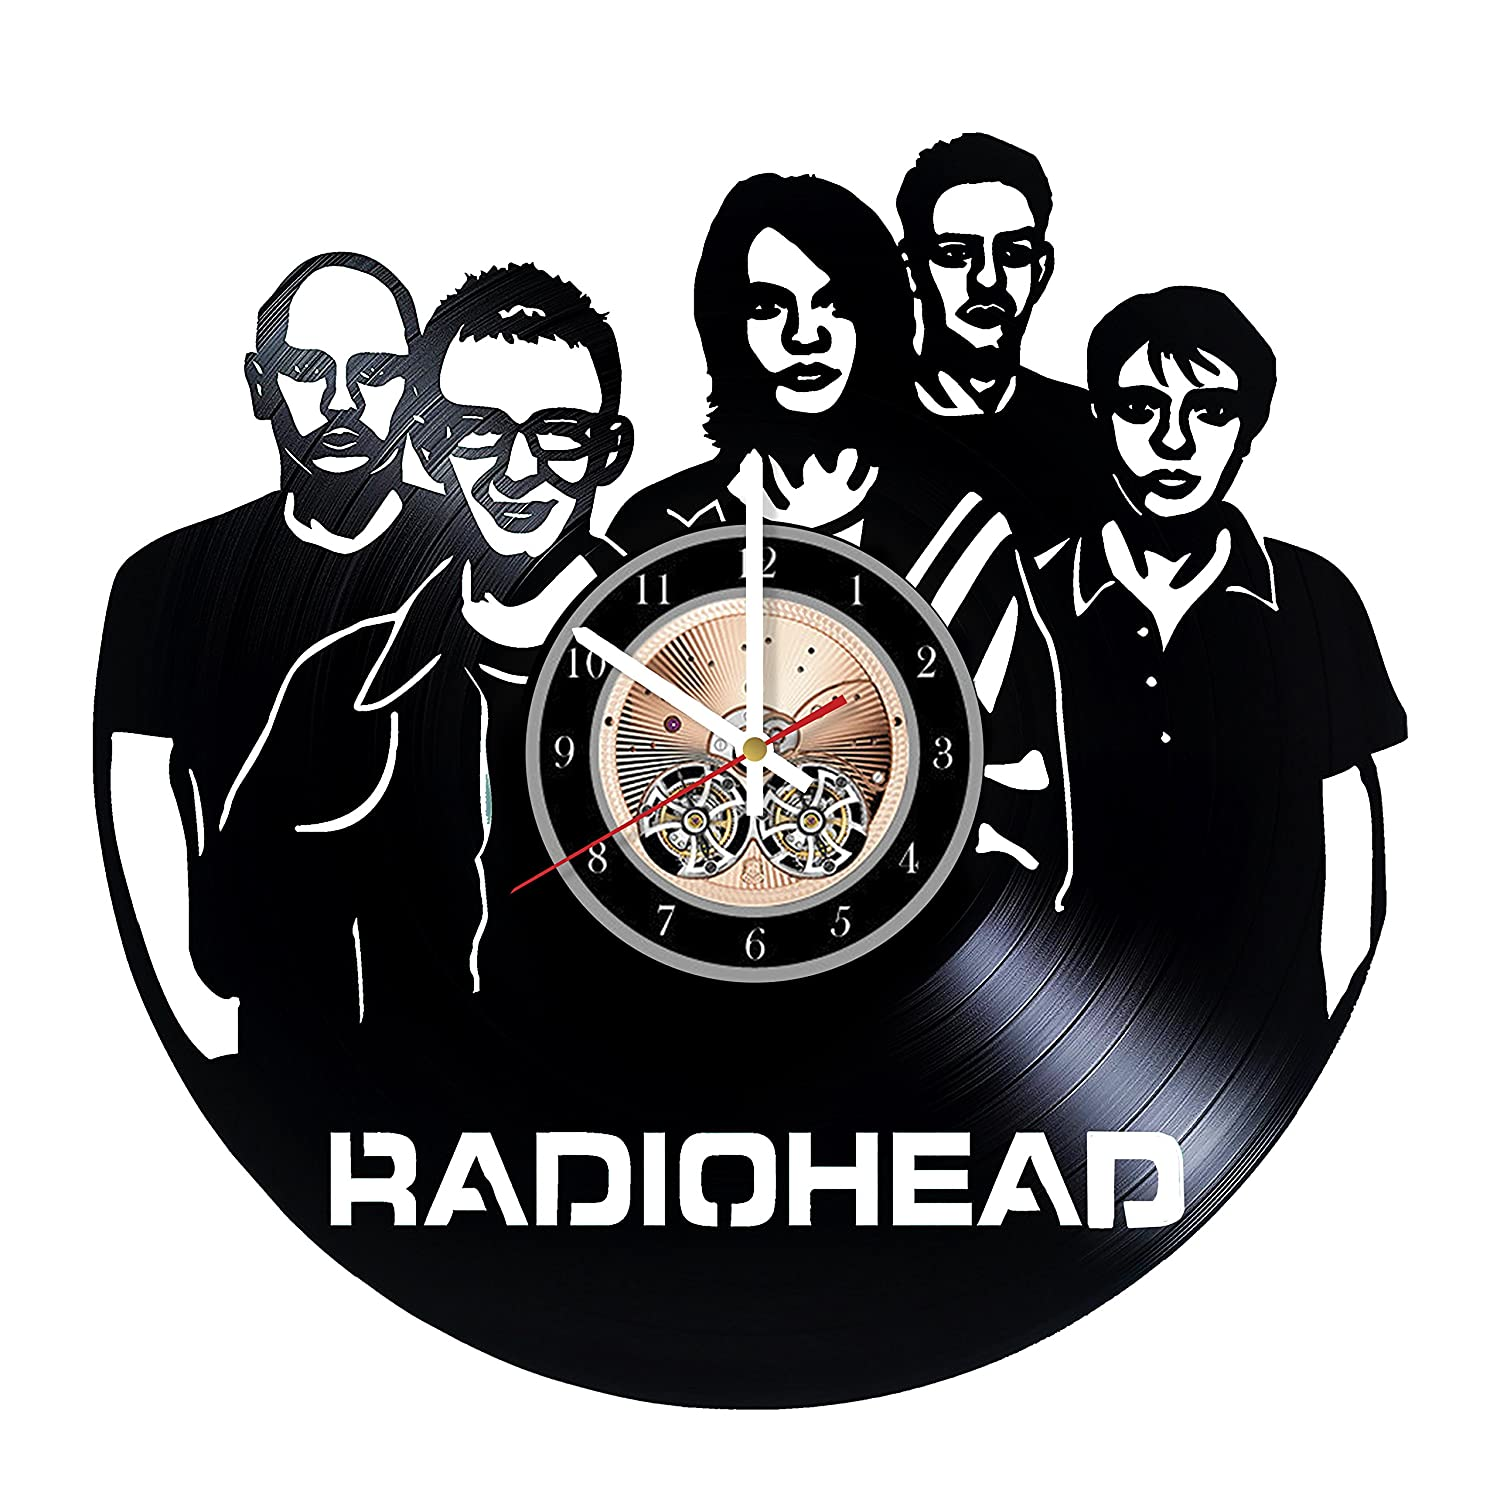 Radiohead English Rock Band HANDMADE Vinyl Record Wall Clock Get unique bedroom or living room wall decor Gift ideas for him and her